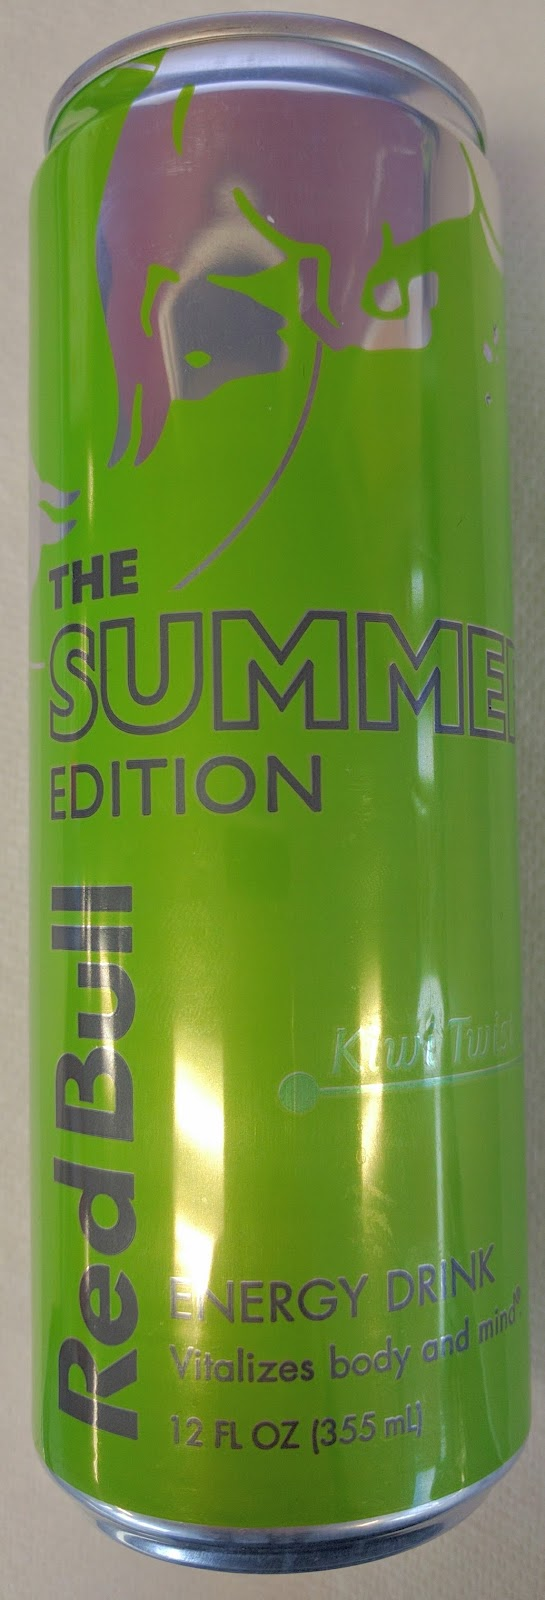 caffeine king red bull the summer edition kiwi twist energy drink review. Black Bedroom Furniture Sets. Home Design Ideas